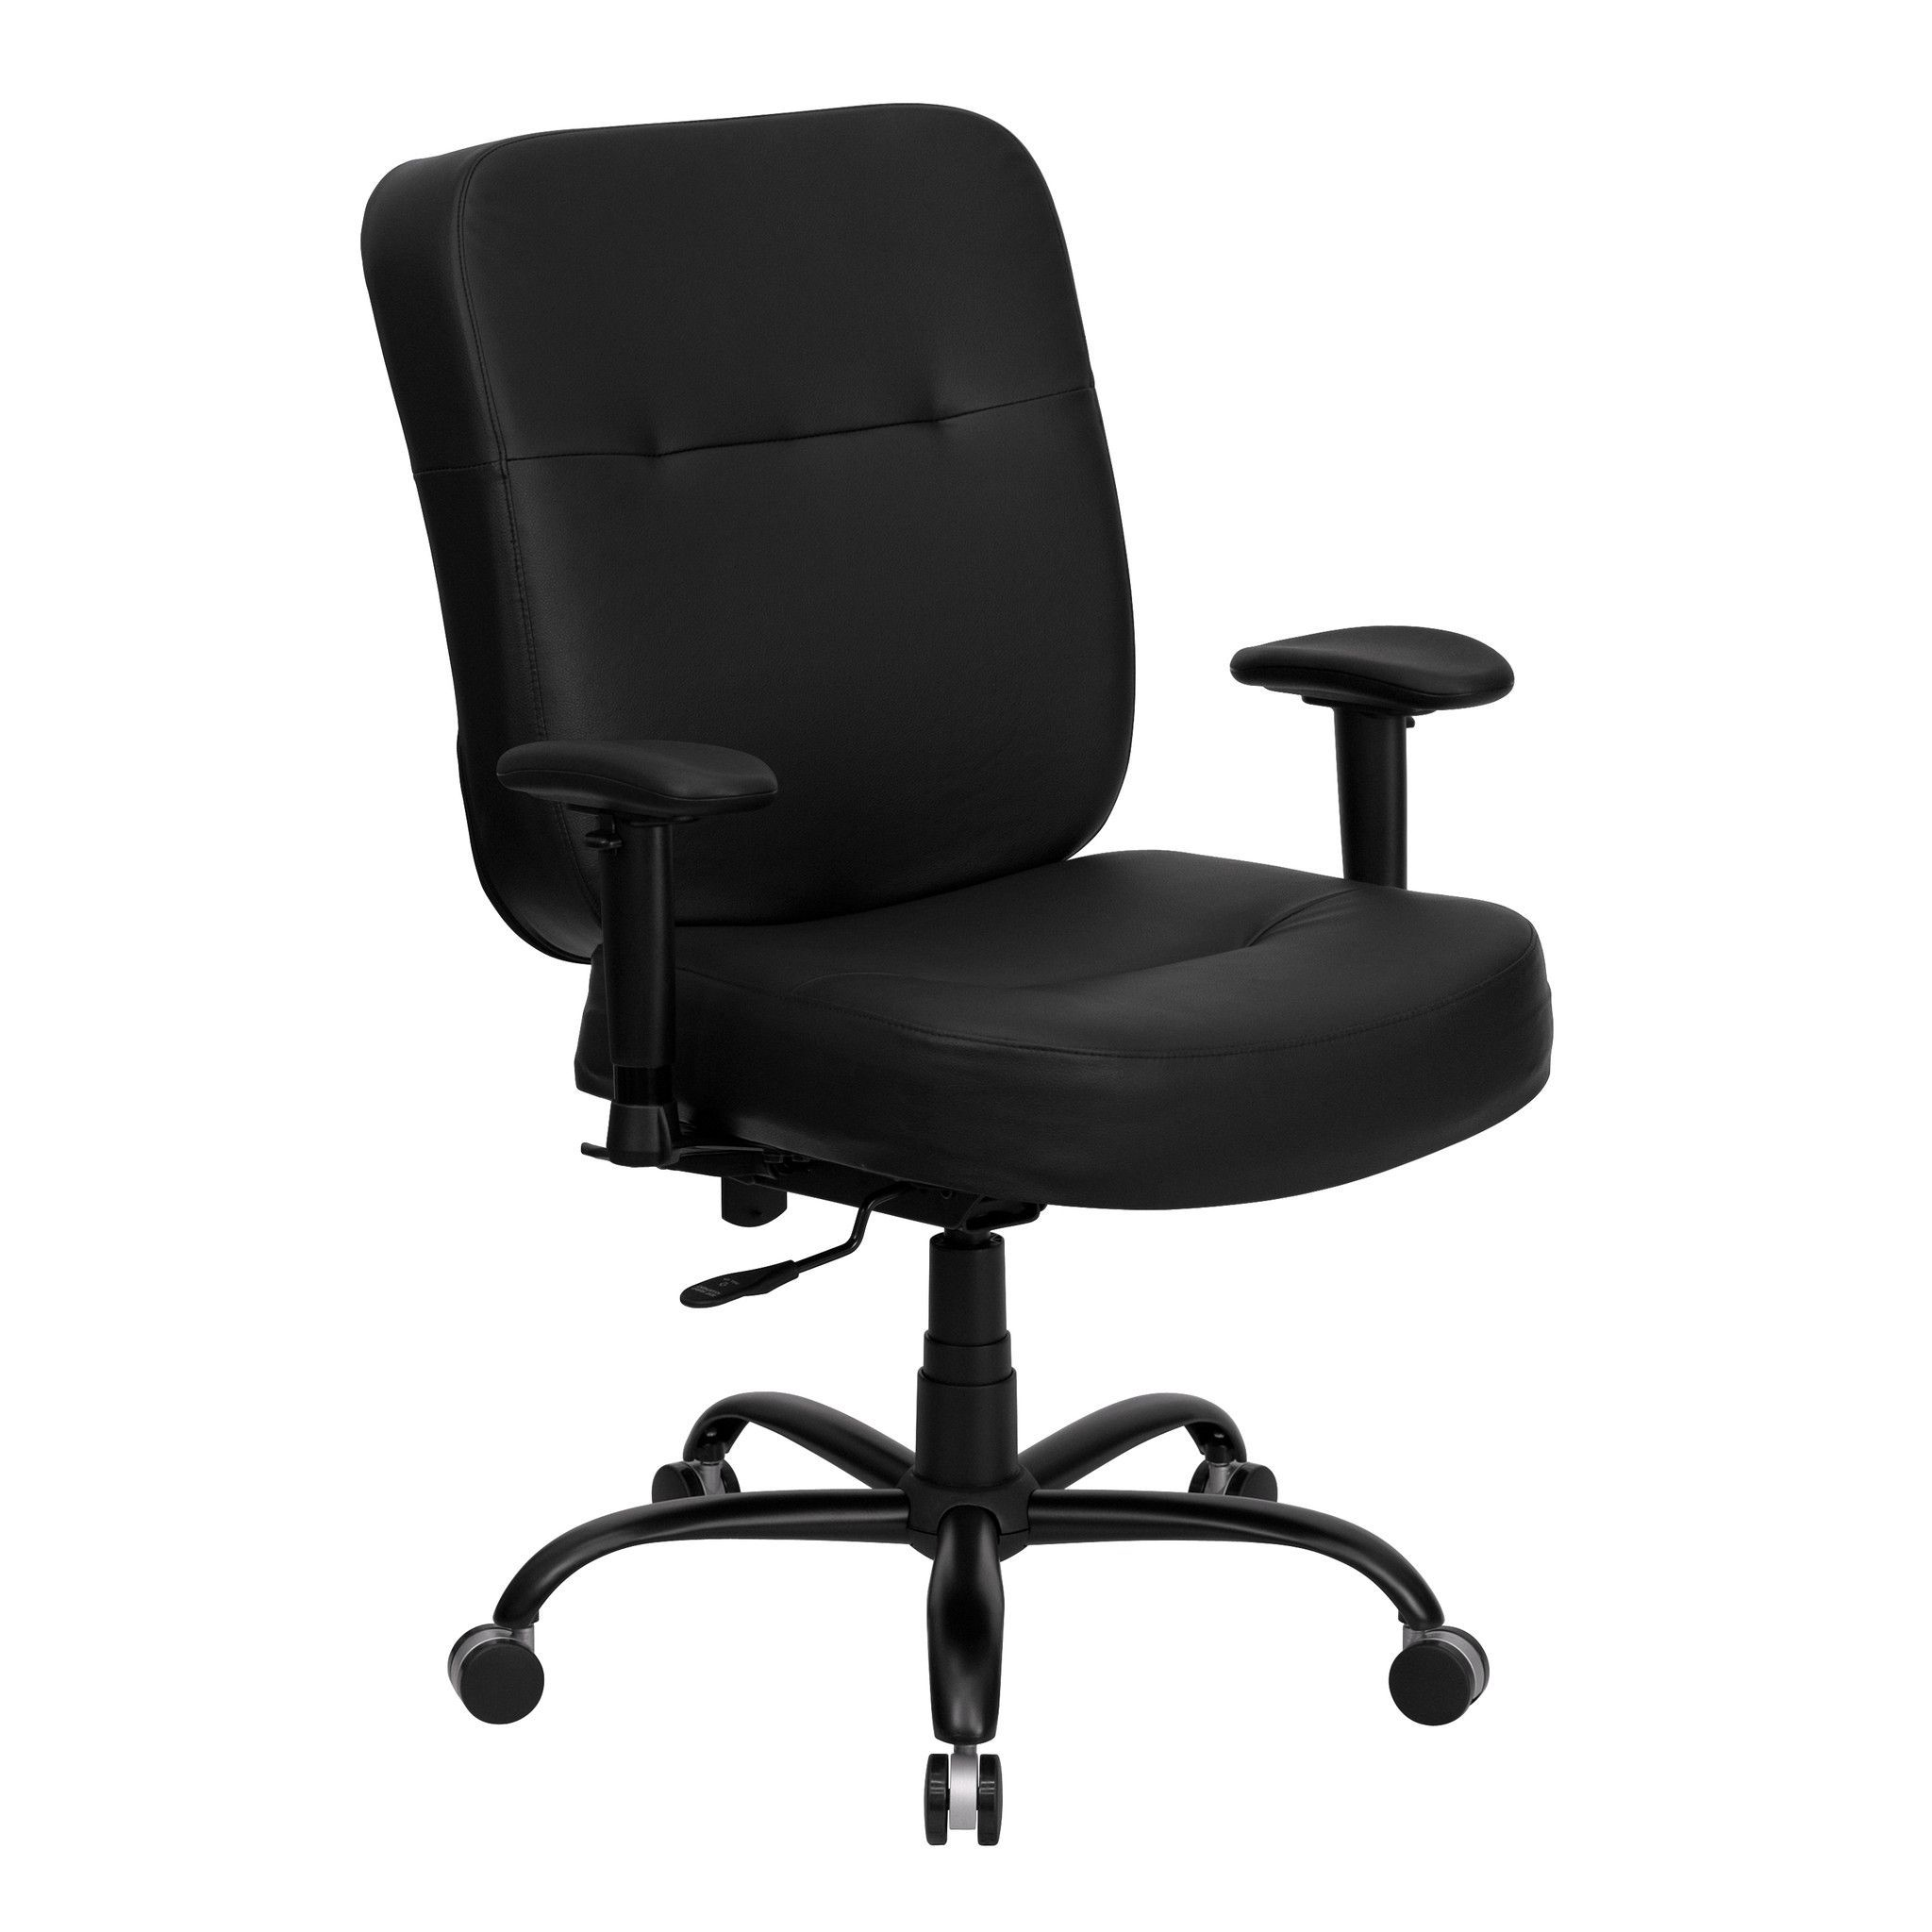 Capacity Big And Tall Black Leather Office Chair With Arms And Extra